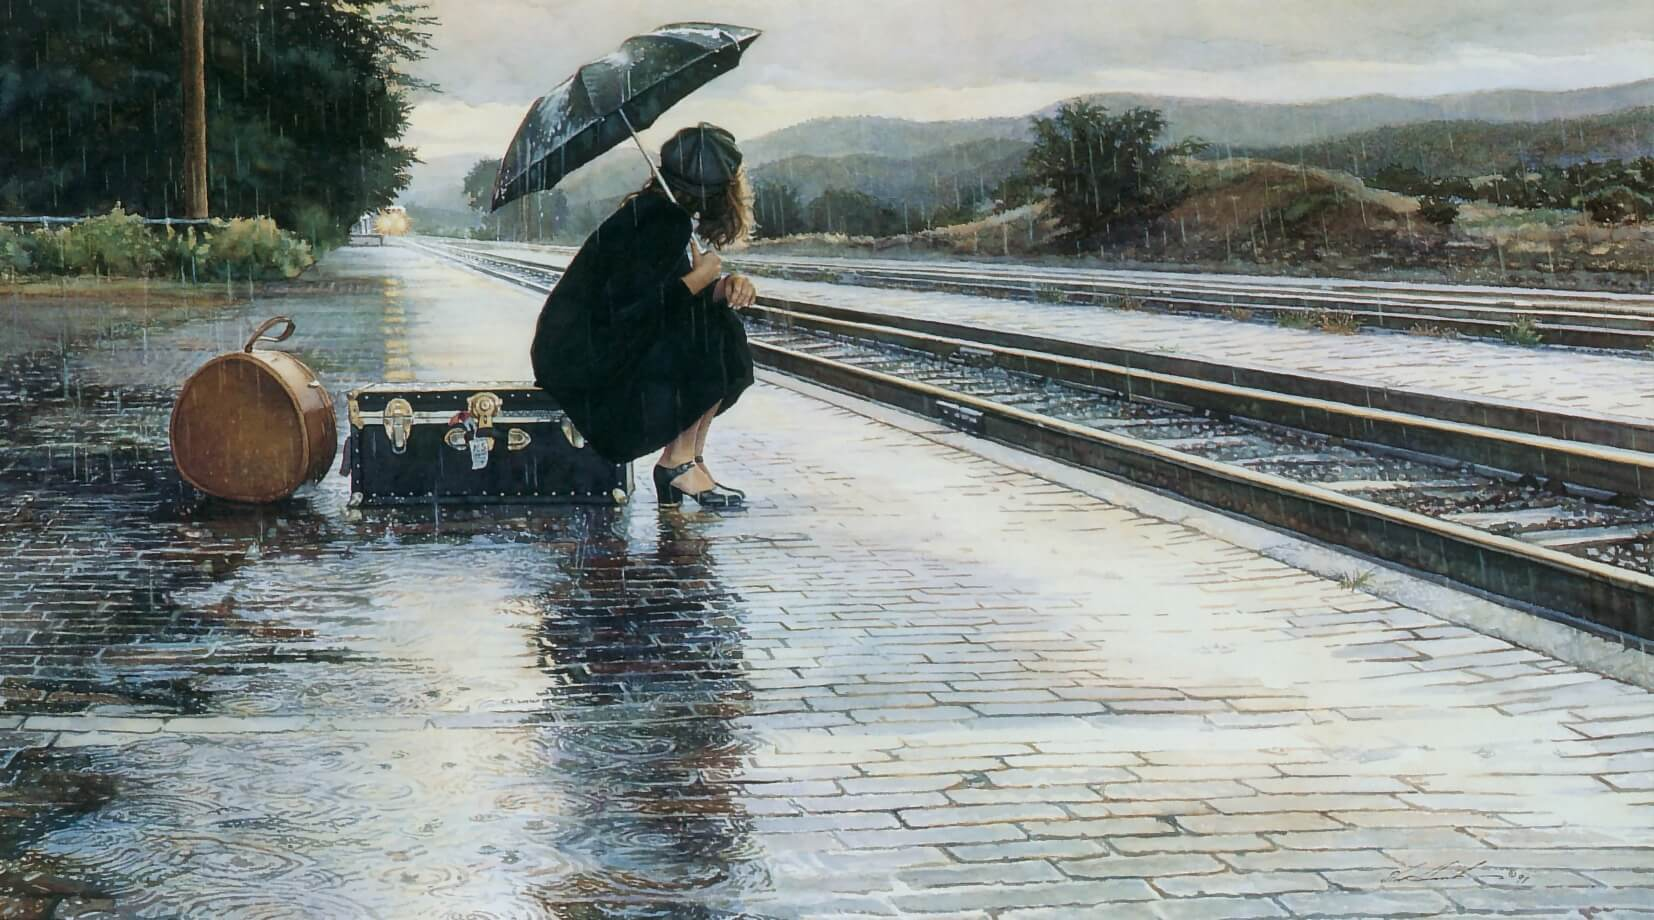 Leaving in the Rain, by Traditional Artist Steve Hanks